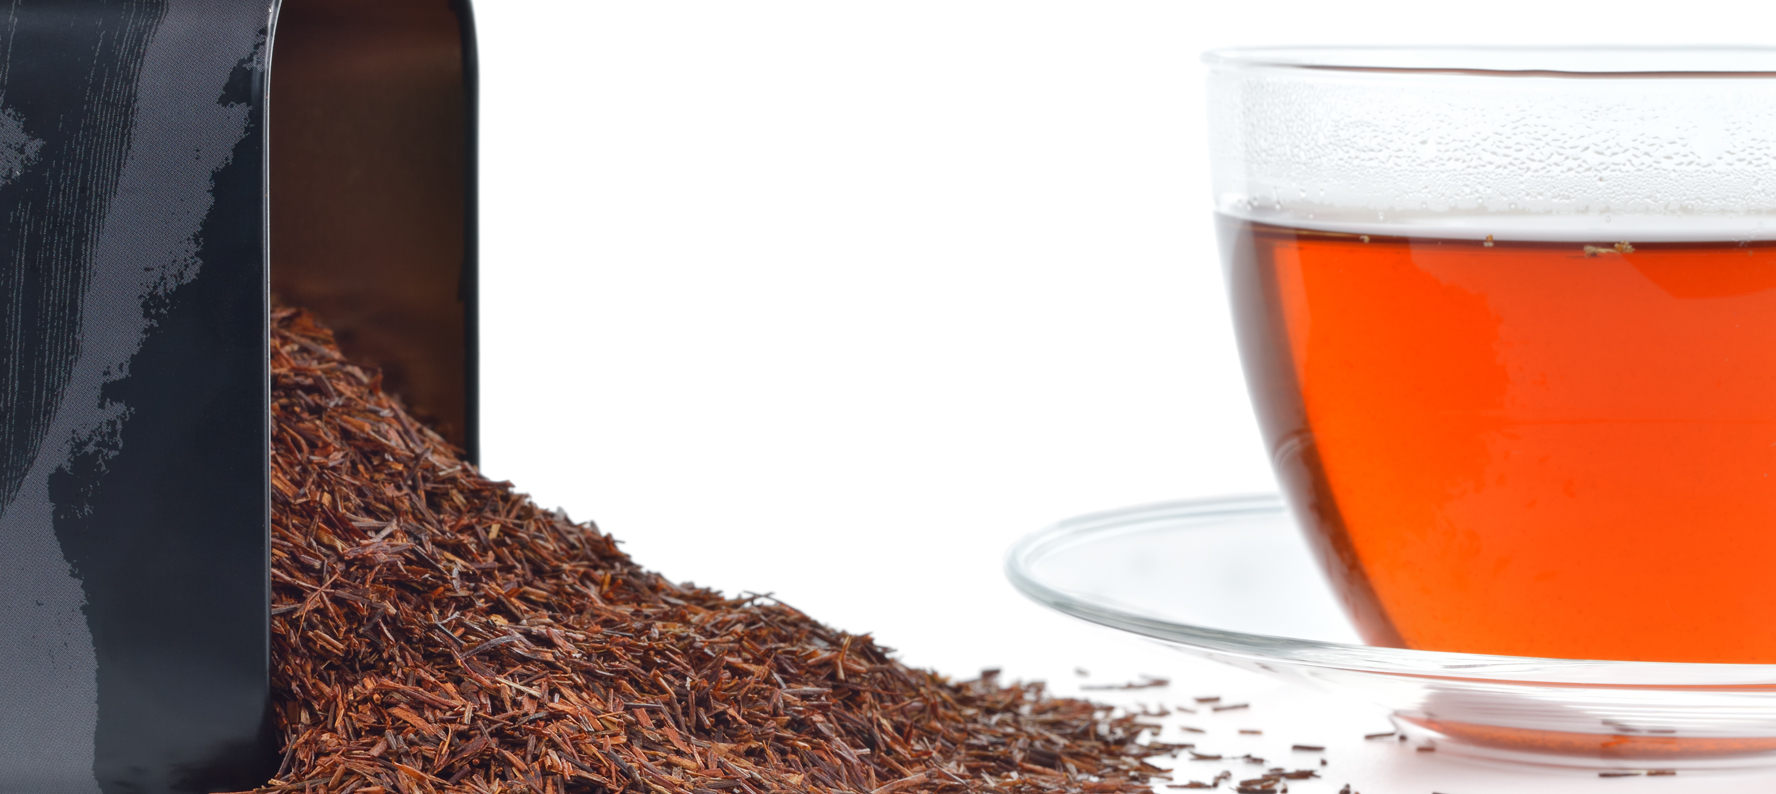 Aspalathus linearis Rooibos Tea extract is used in natural skin care products for it's antioxidant and anti-inflammatory effects.